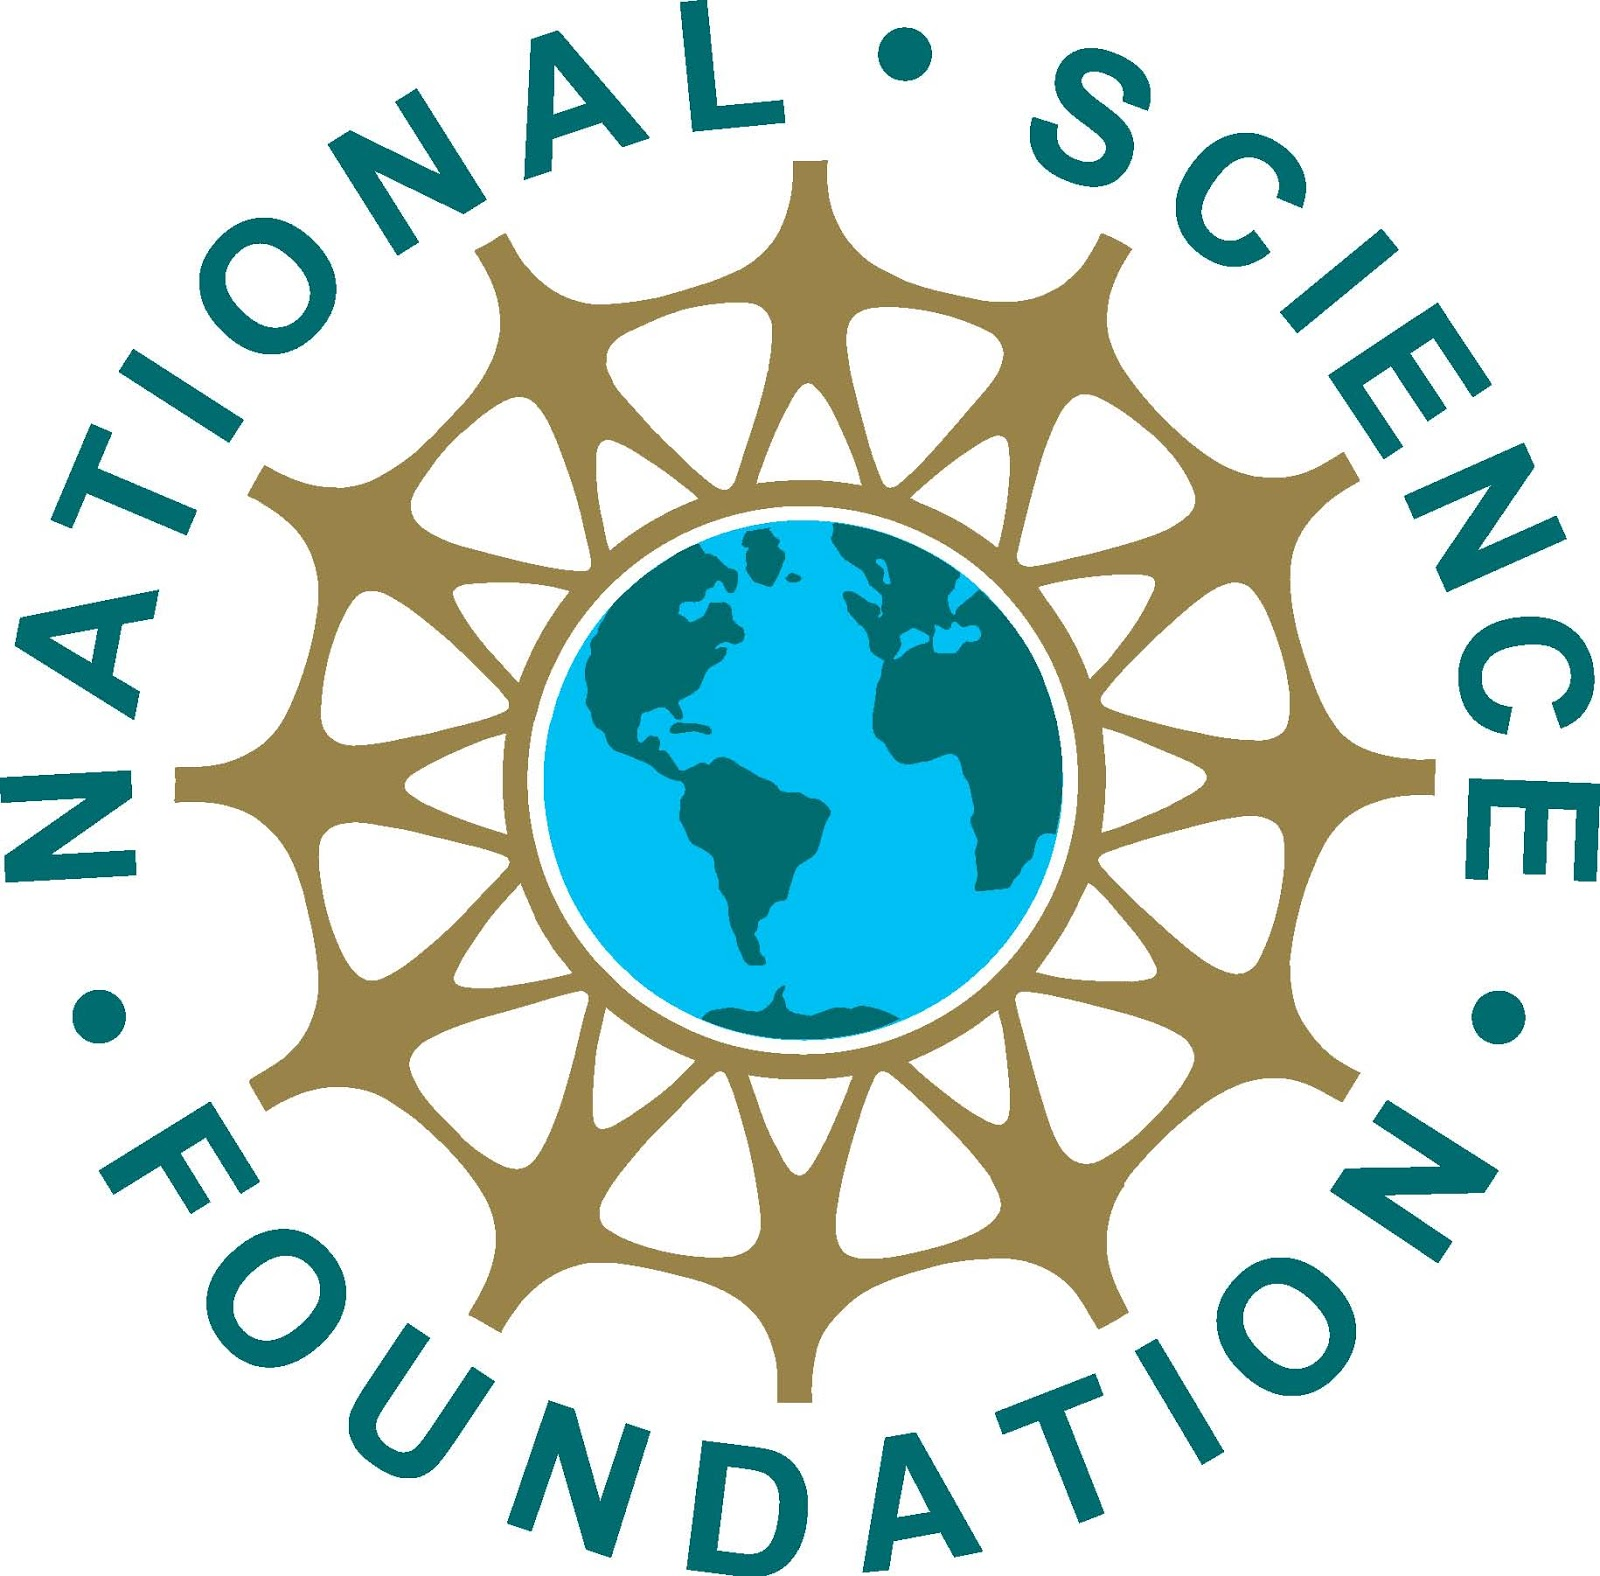 nsf grfp research experience essay